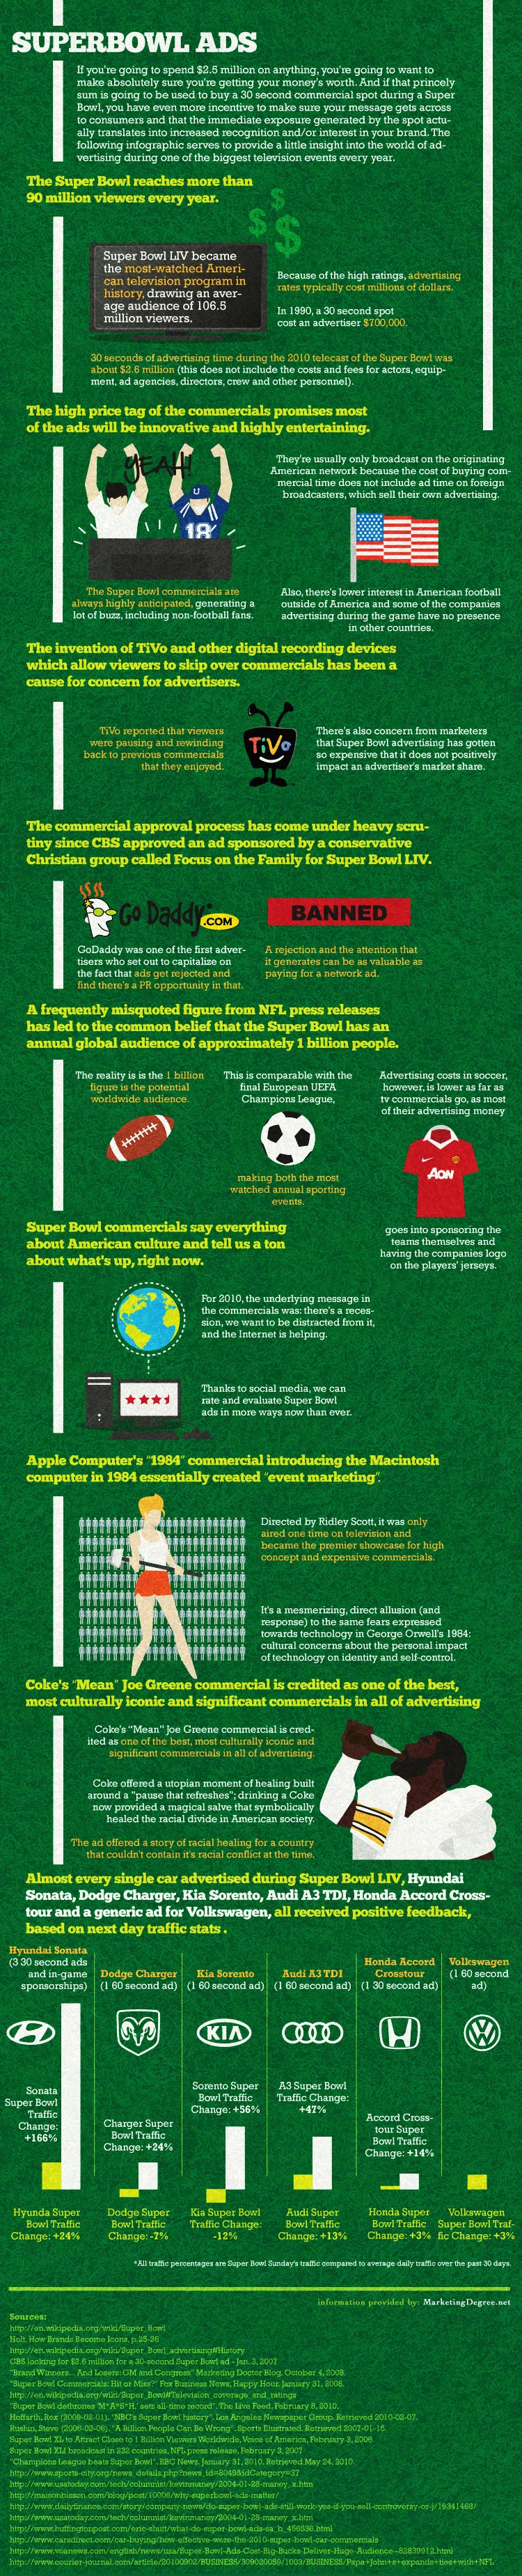 superbowl Superbowl ads infographic